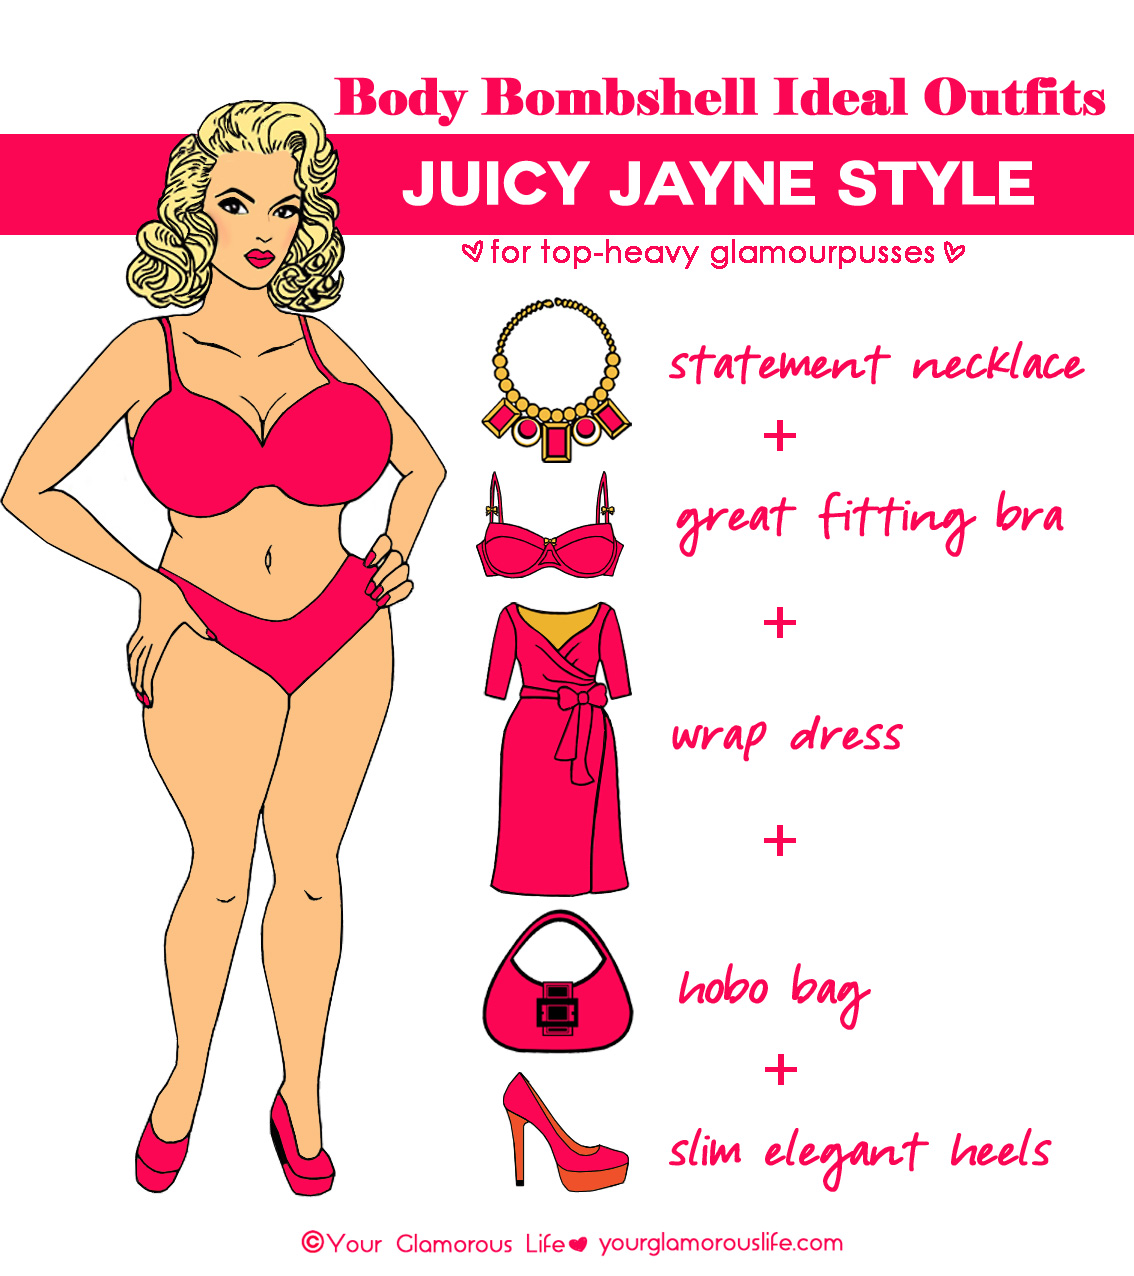 An ideal outfit for a Juicy Jayne body type. Featuring Jayne.